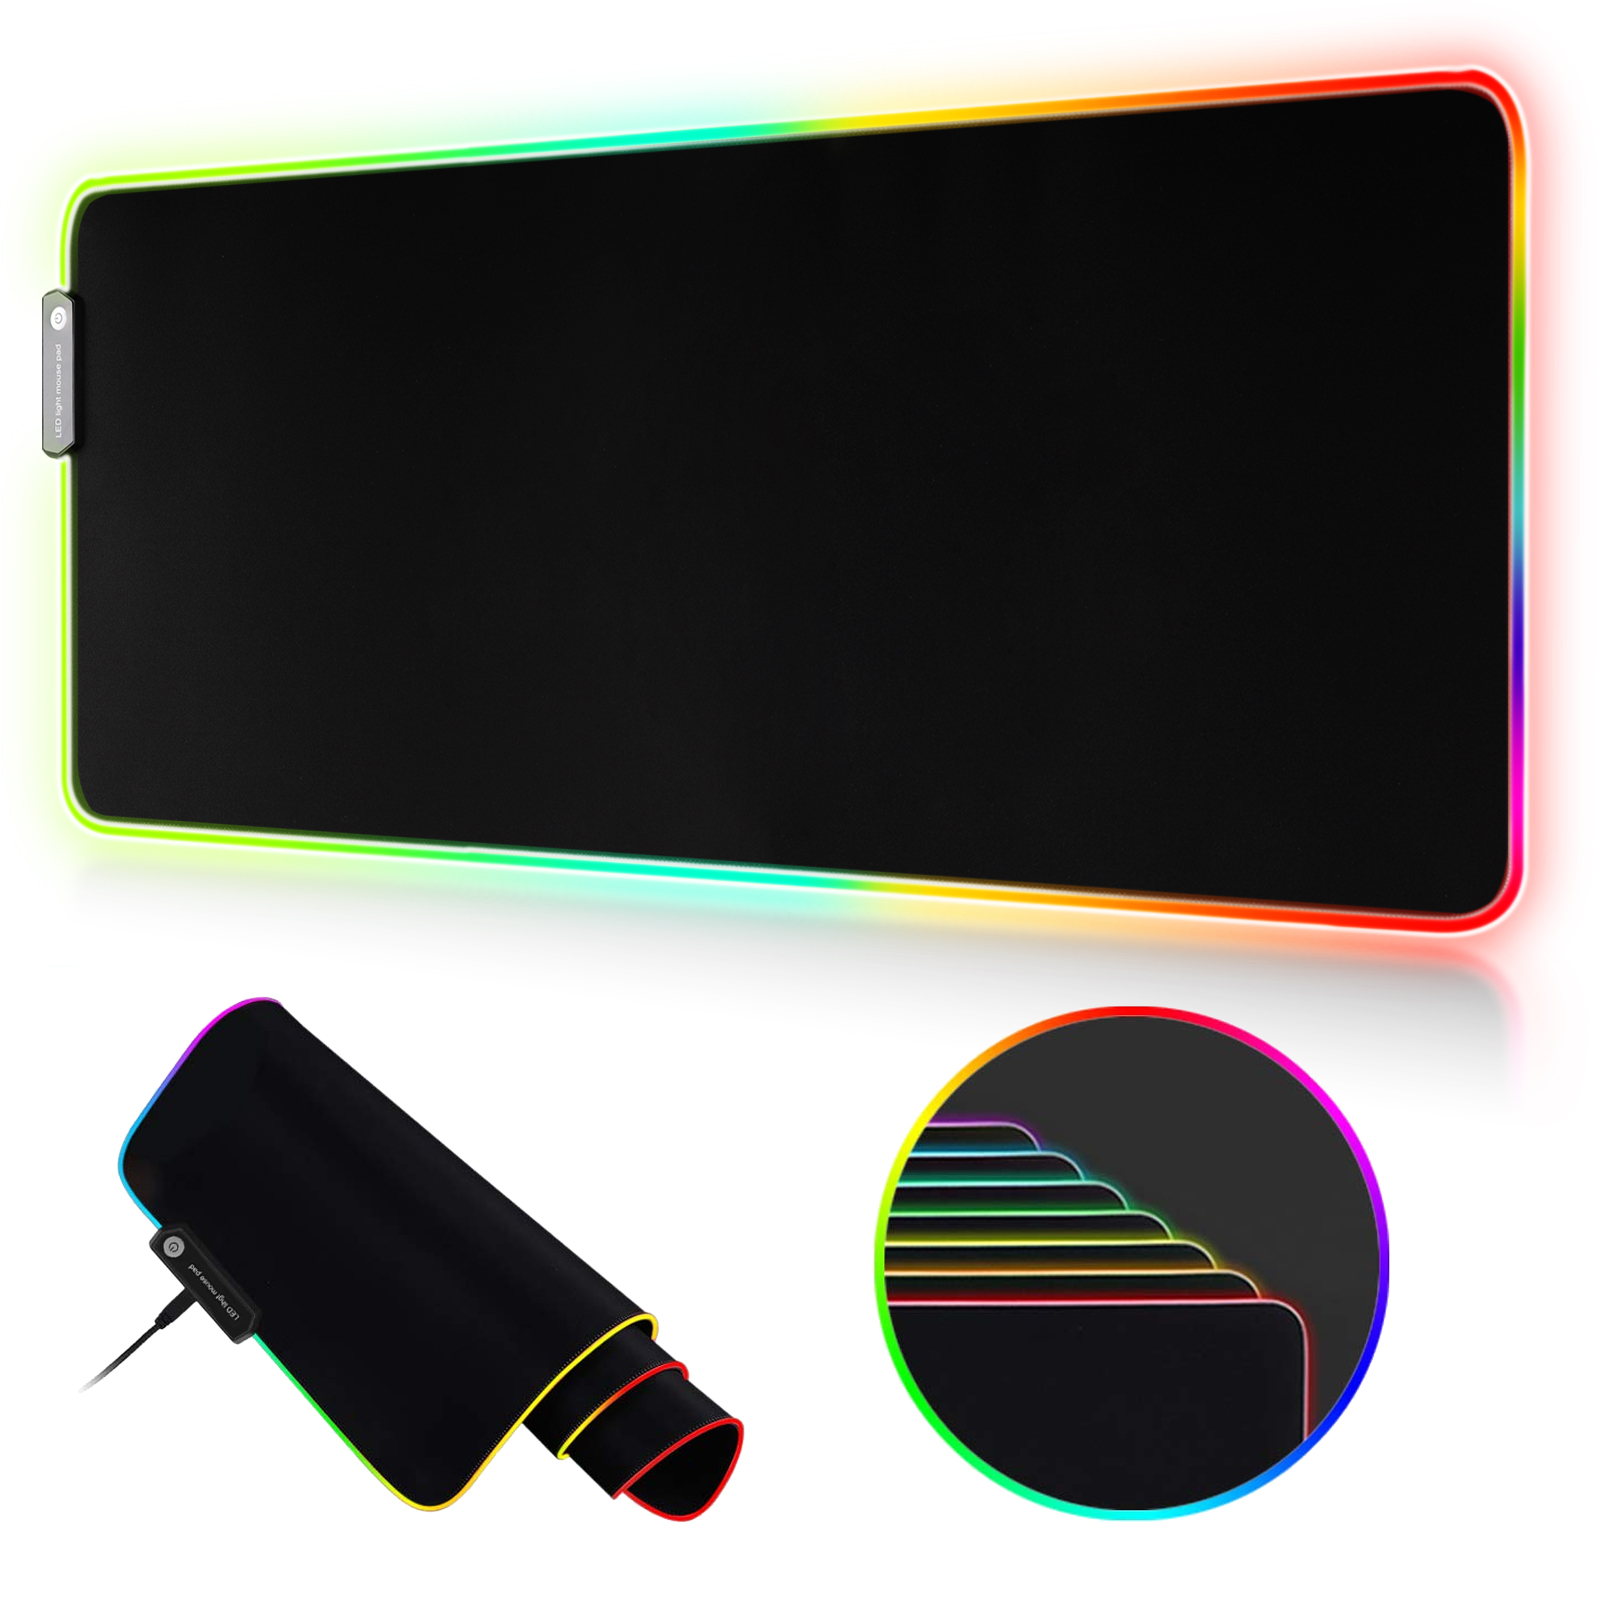 RGB Gaming Large Mouse Pad, 30.7 X 11.8in Led Extended Mouse Mat – Non Slip Rubber Base Computer Keyboard Pad